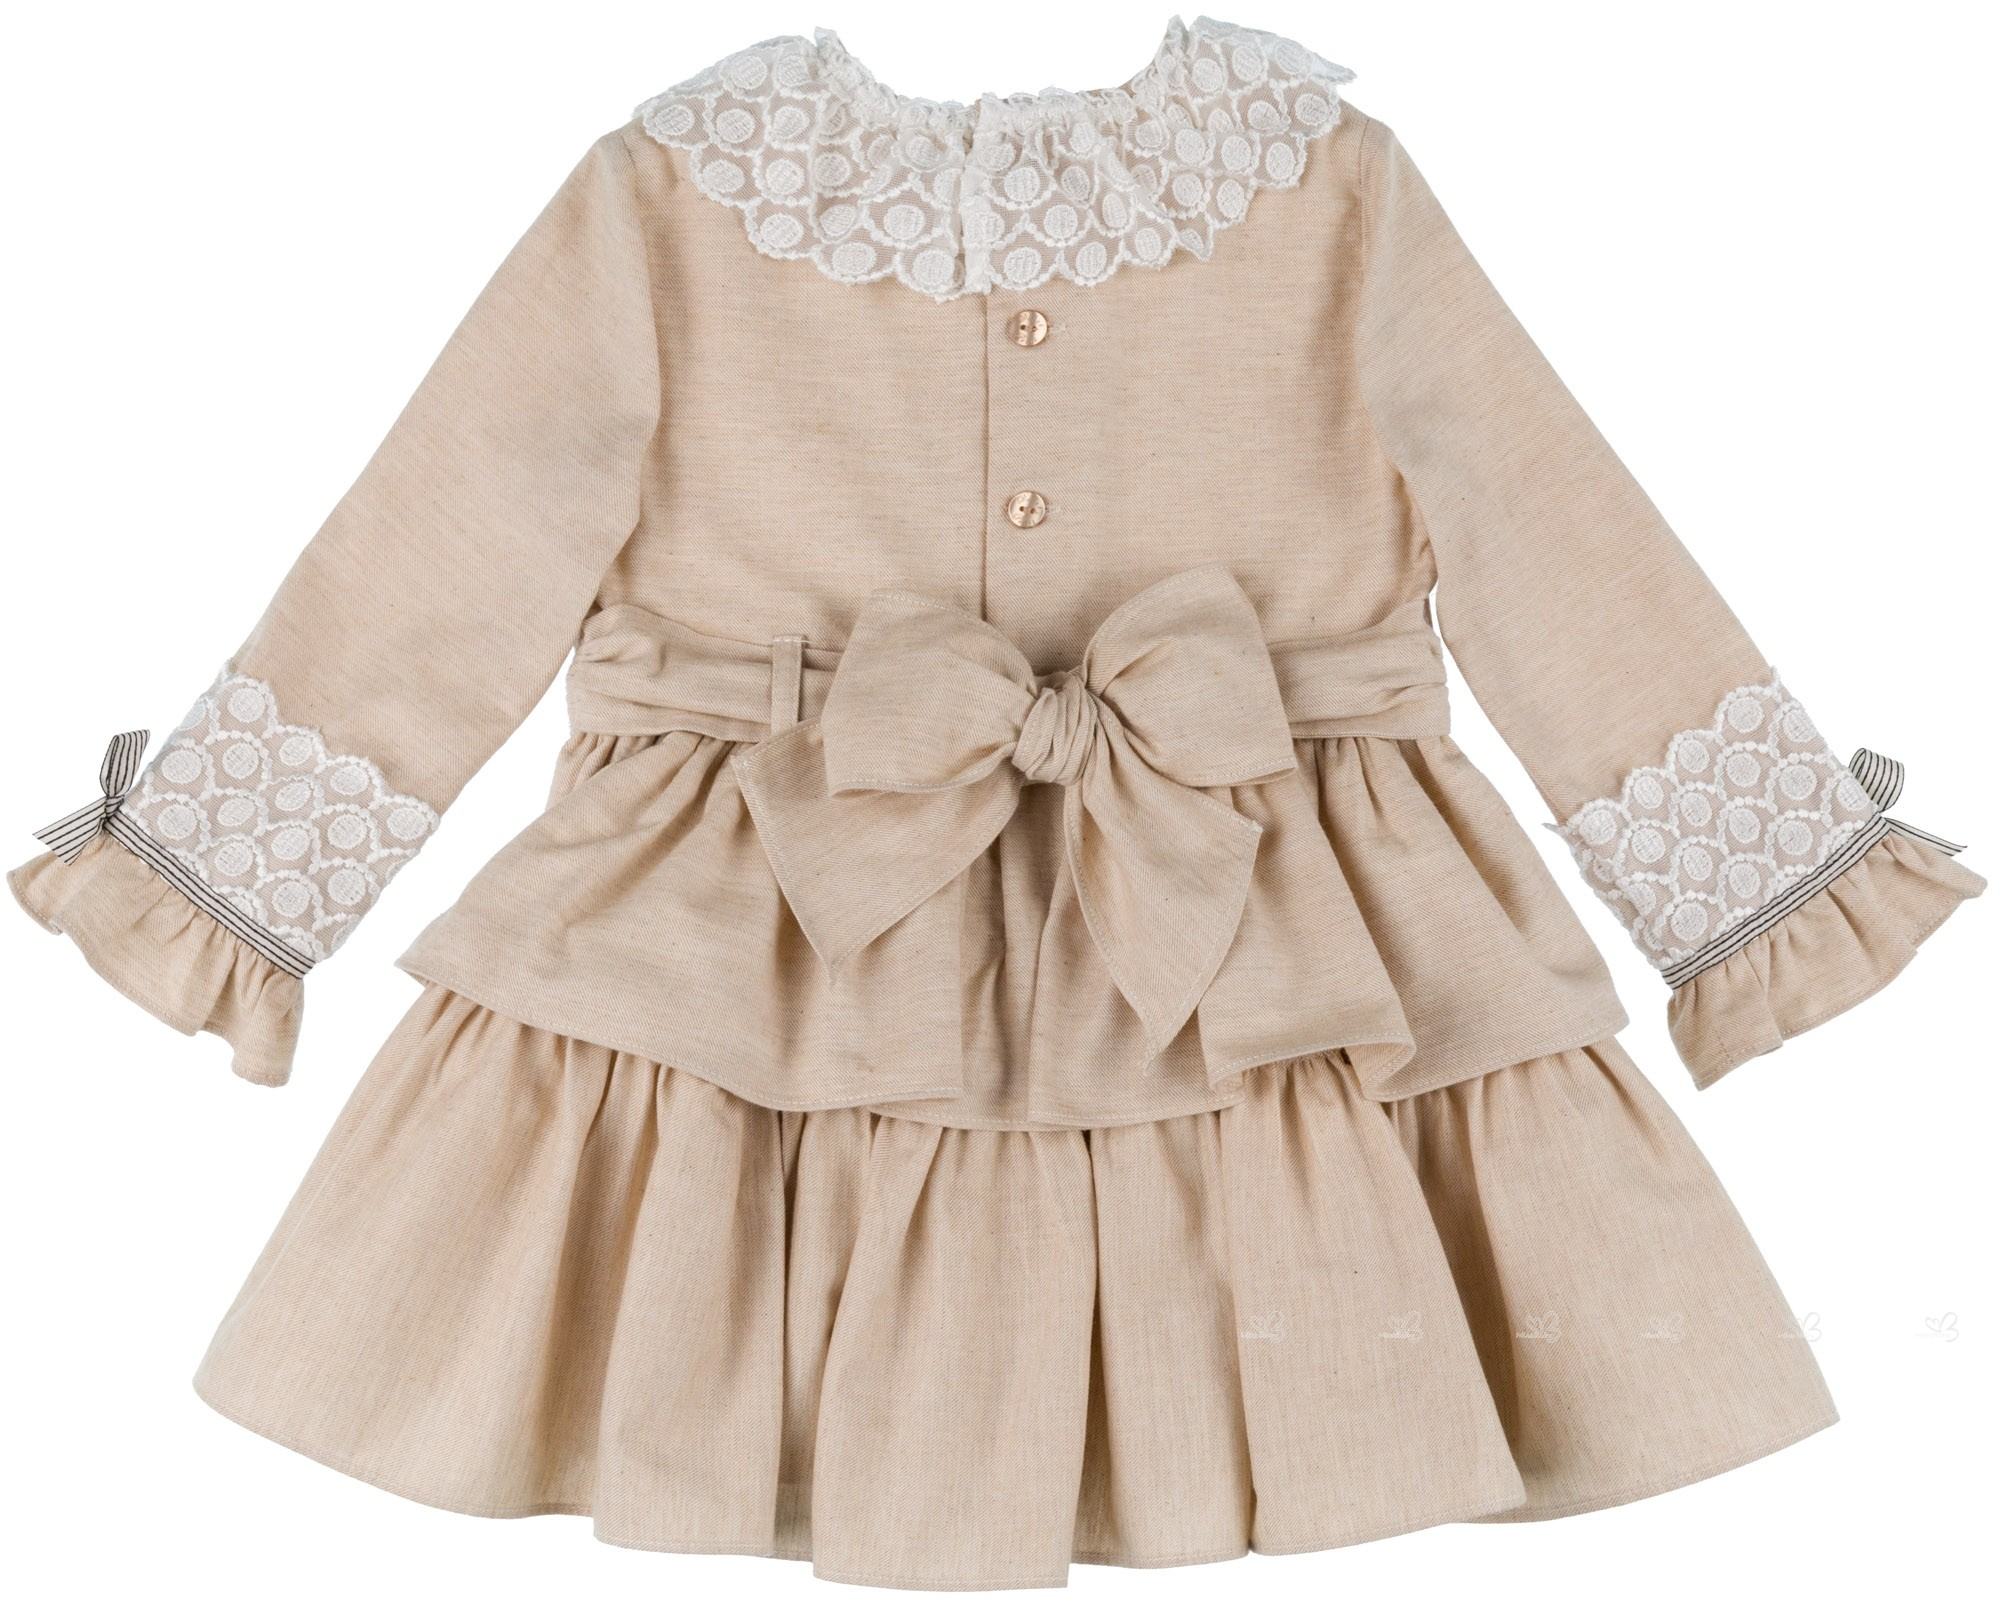 Beige Dress Picture Collection: Dolce Petit Girls Beige Ruffle Layered Dress With Lace